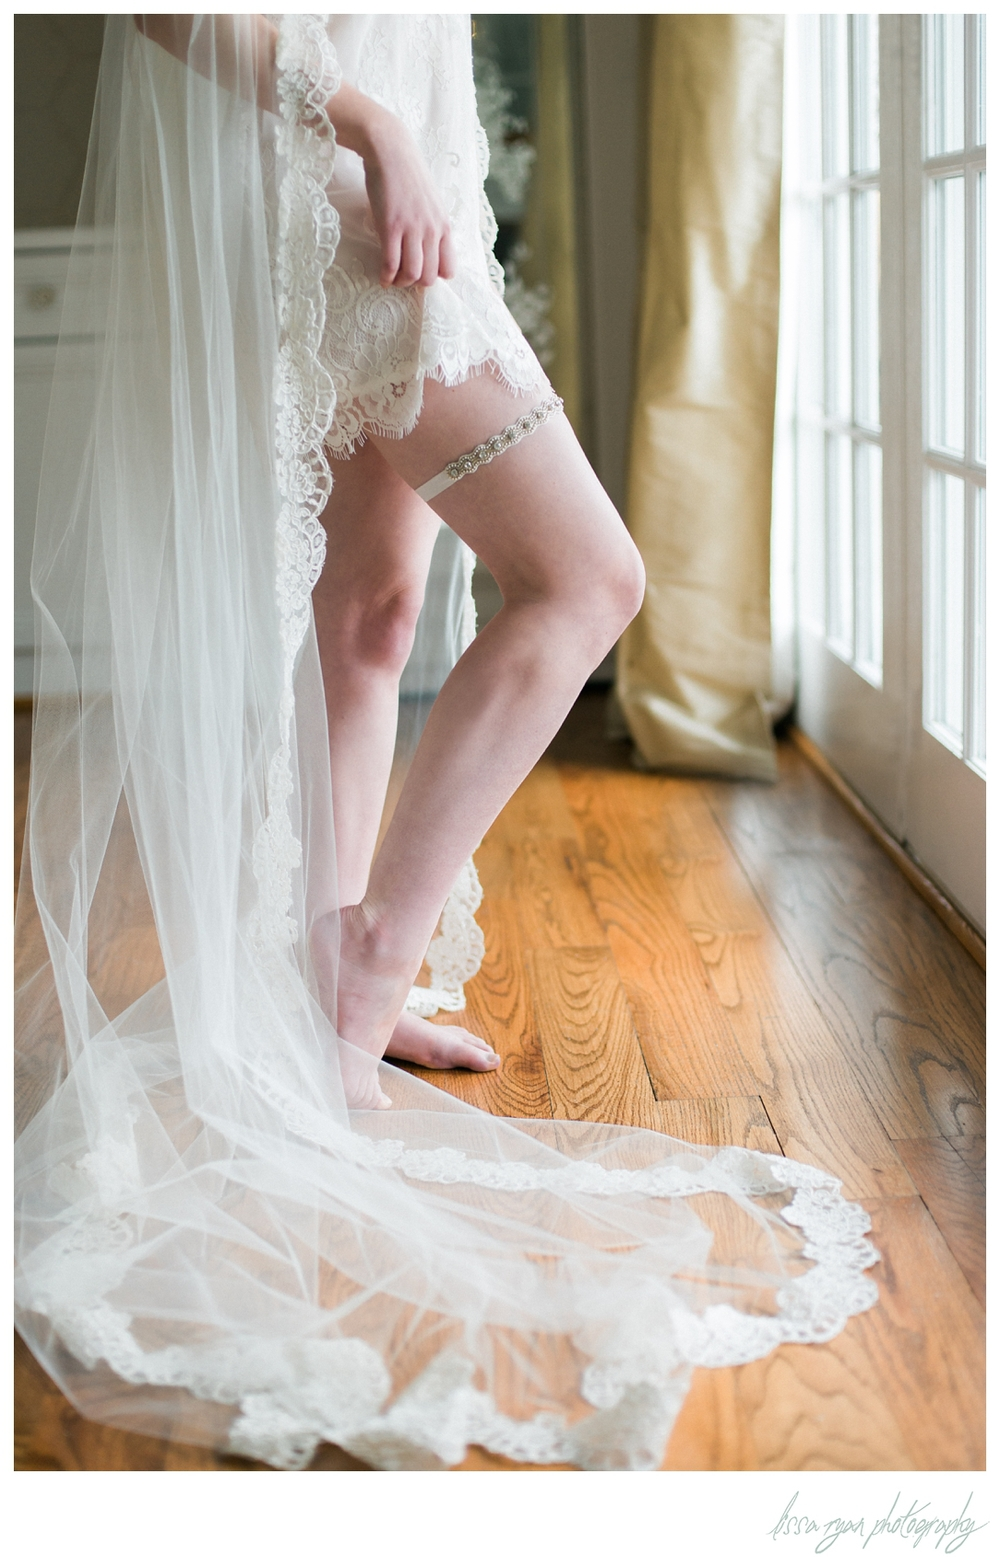 bridal boudoir inspiration shoot washington dc wedding photographer lissa ryan photography